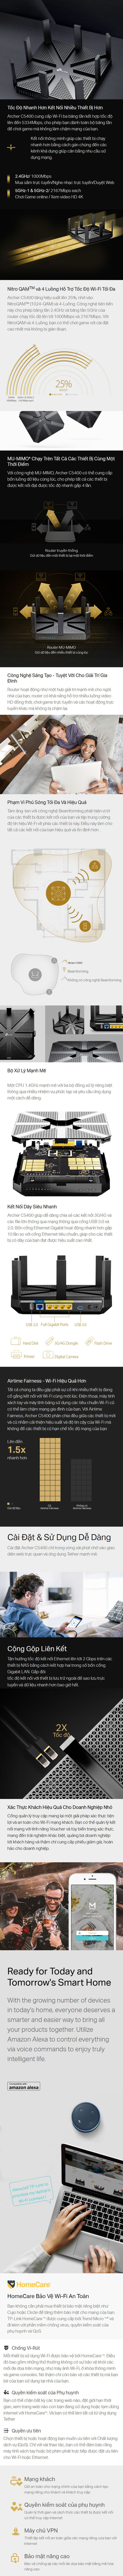 TP-Link Archer C5400 Router WiFi MU-MIMO 3 Băng Tần